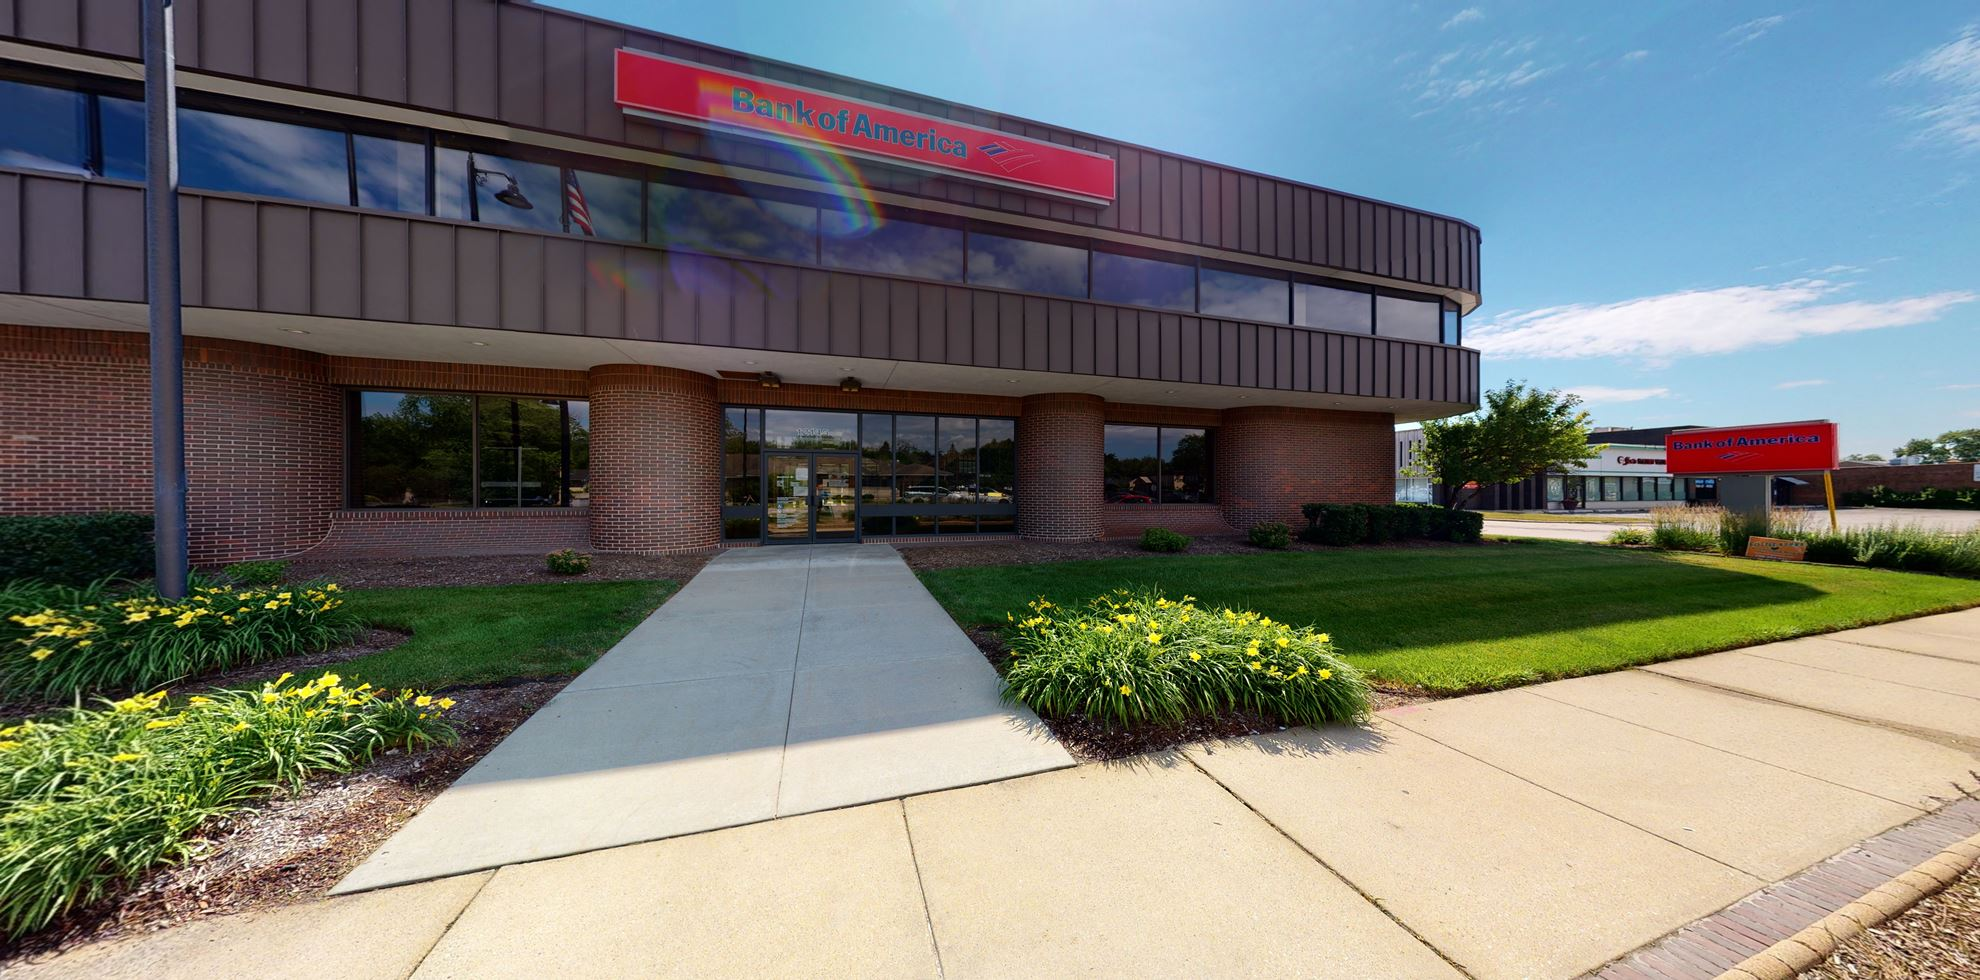 Bank of America financial center with drive-thru ATM and teller | 12145 S Harlem Ave, Palos Heights, IL 60463